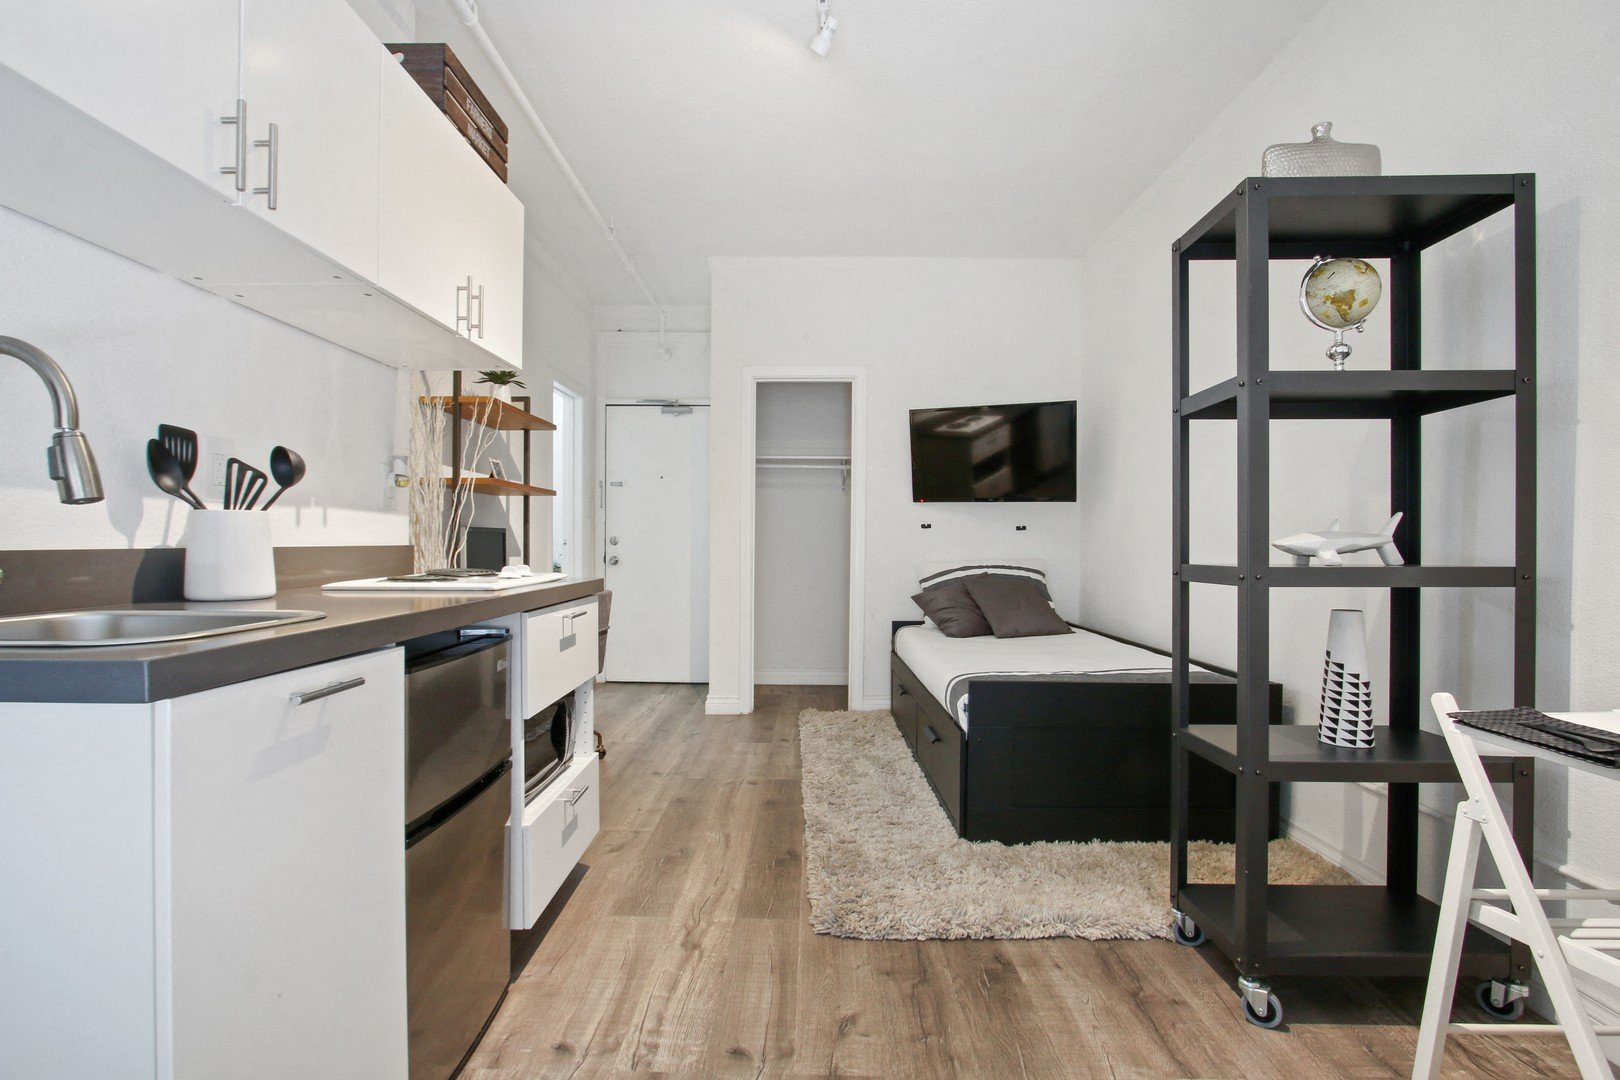 2208 West 8th Street, Los Angeles, CA 90057, 1 Bedroom, 1 Bathroom, Los Angeles County, California, Apartment for Rent